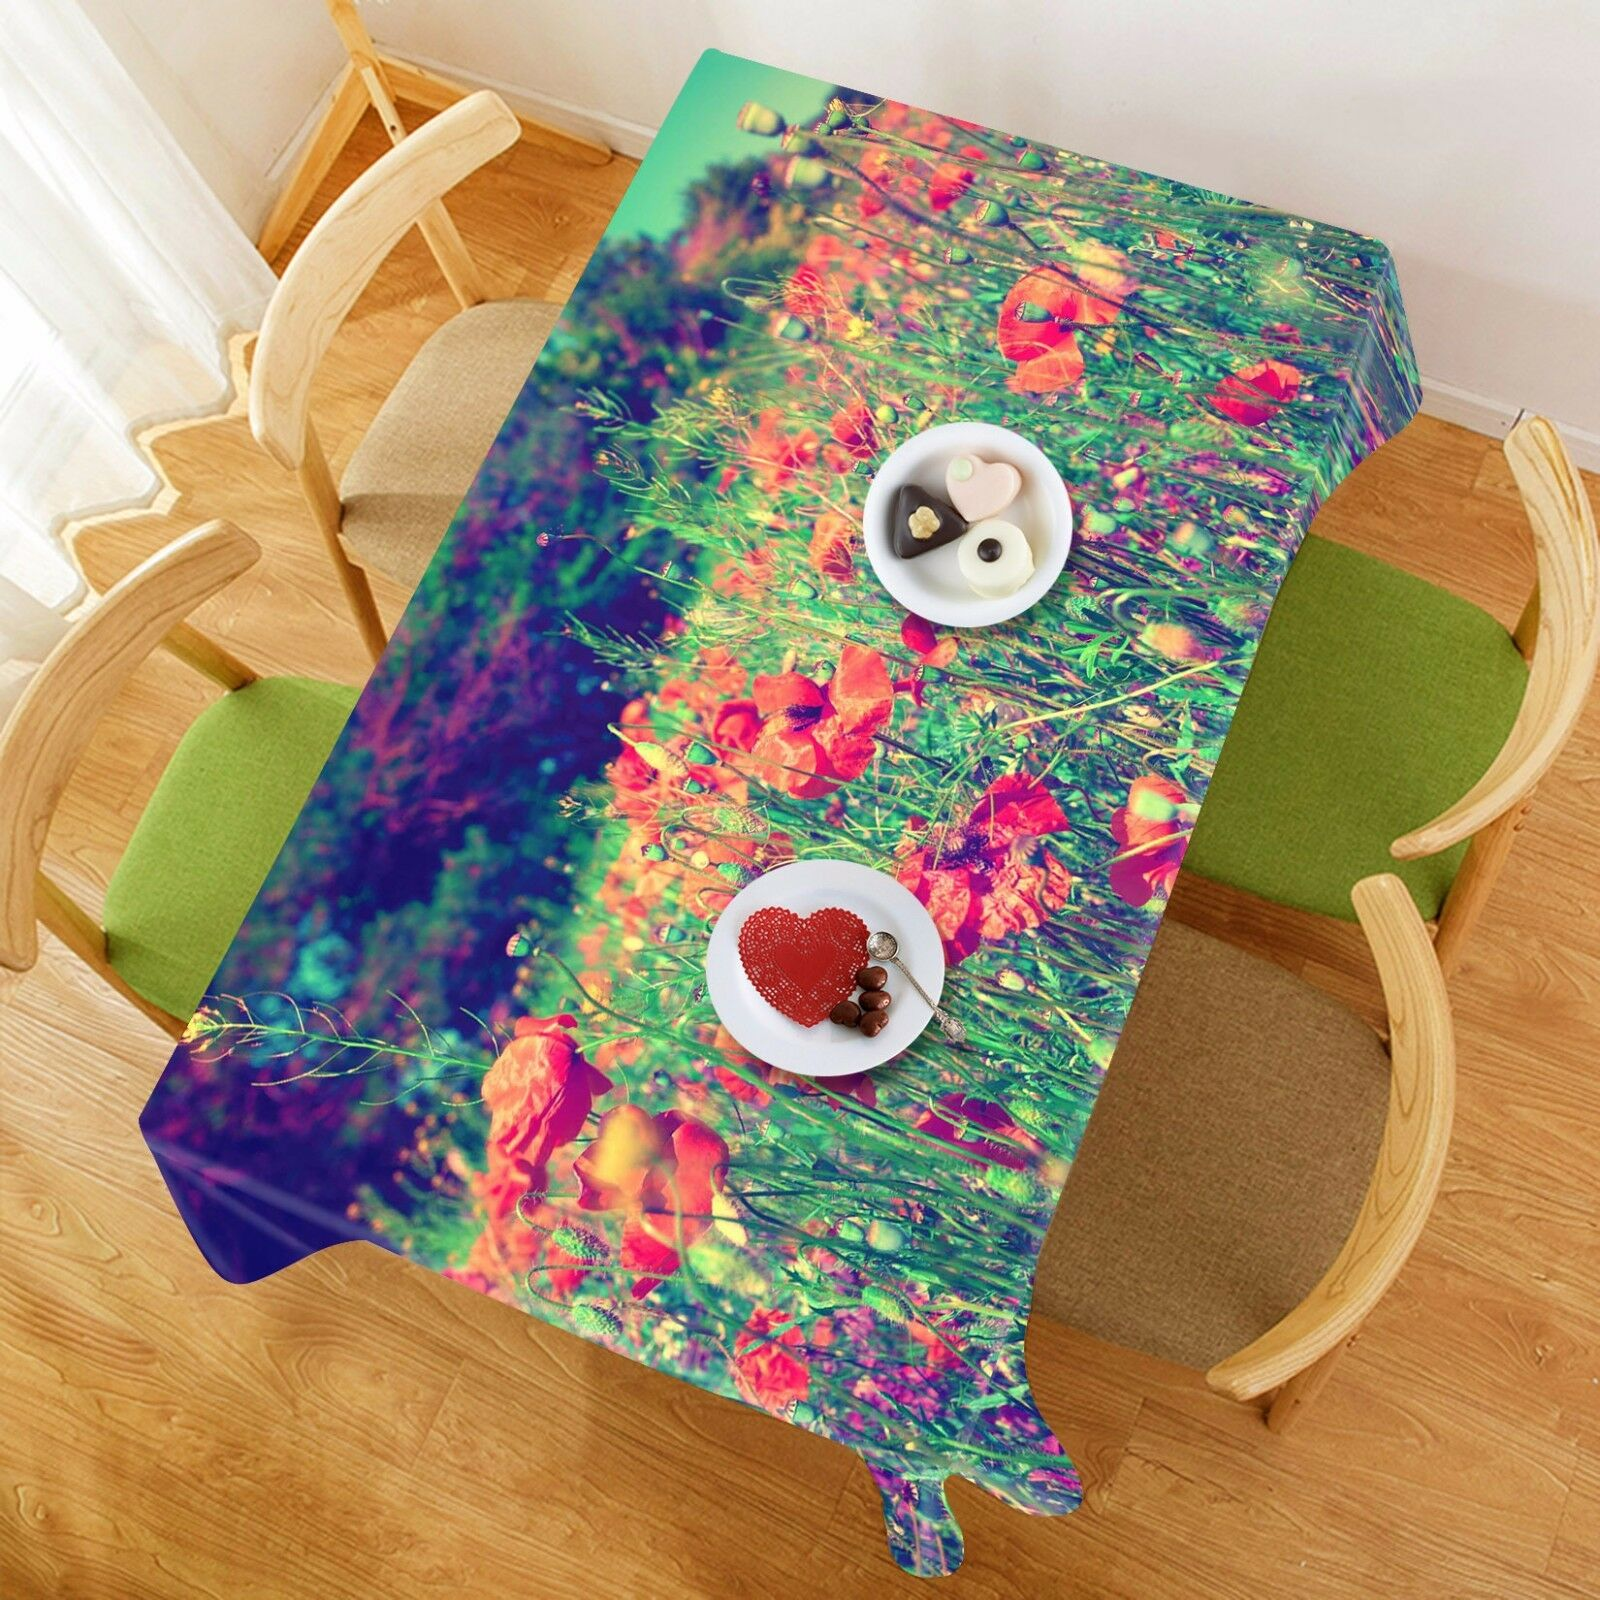 3D Field 726 Tablecloth Table Cover Cloth Birthday Party Event AJ WALLPAPER AU